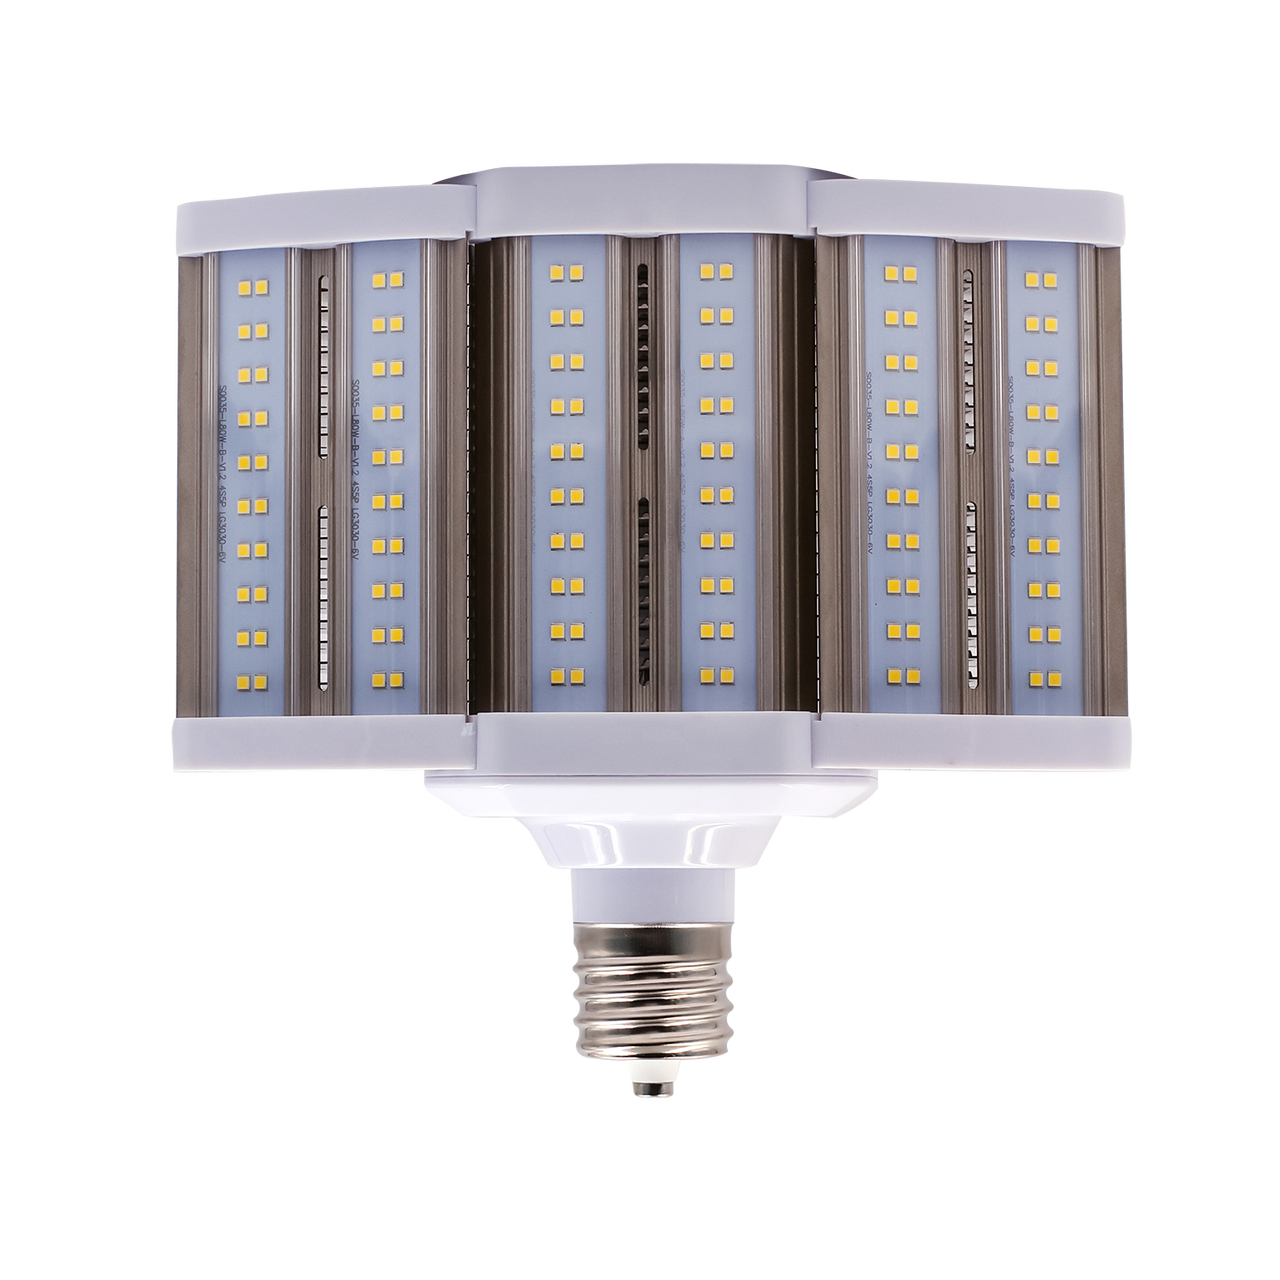 Halco LED HID RETROFIT Bypass 120W 5000K Non-DIMMABLE 120-277V EX39